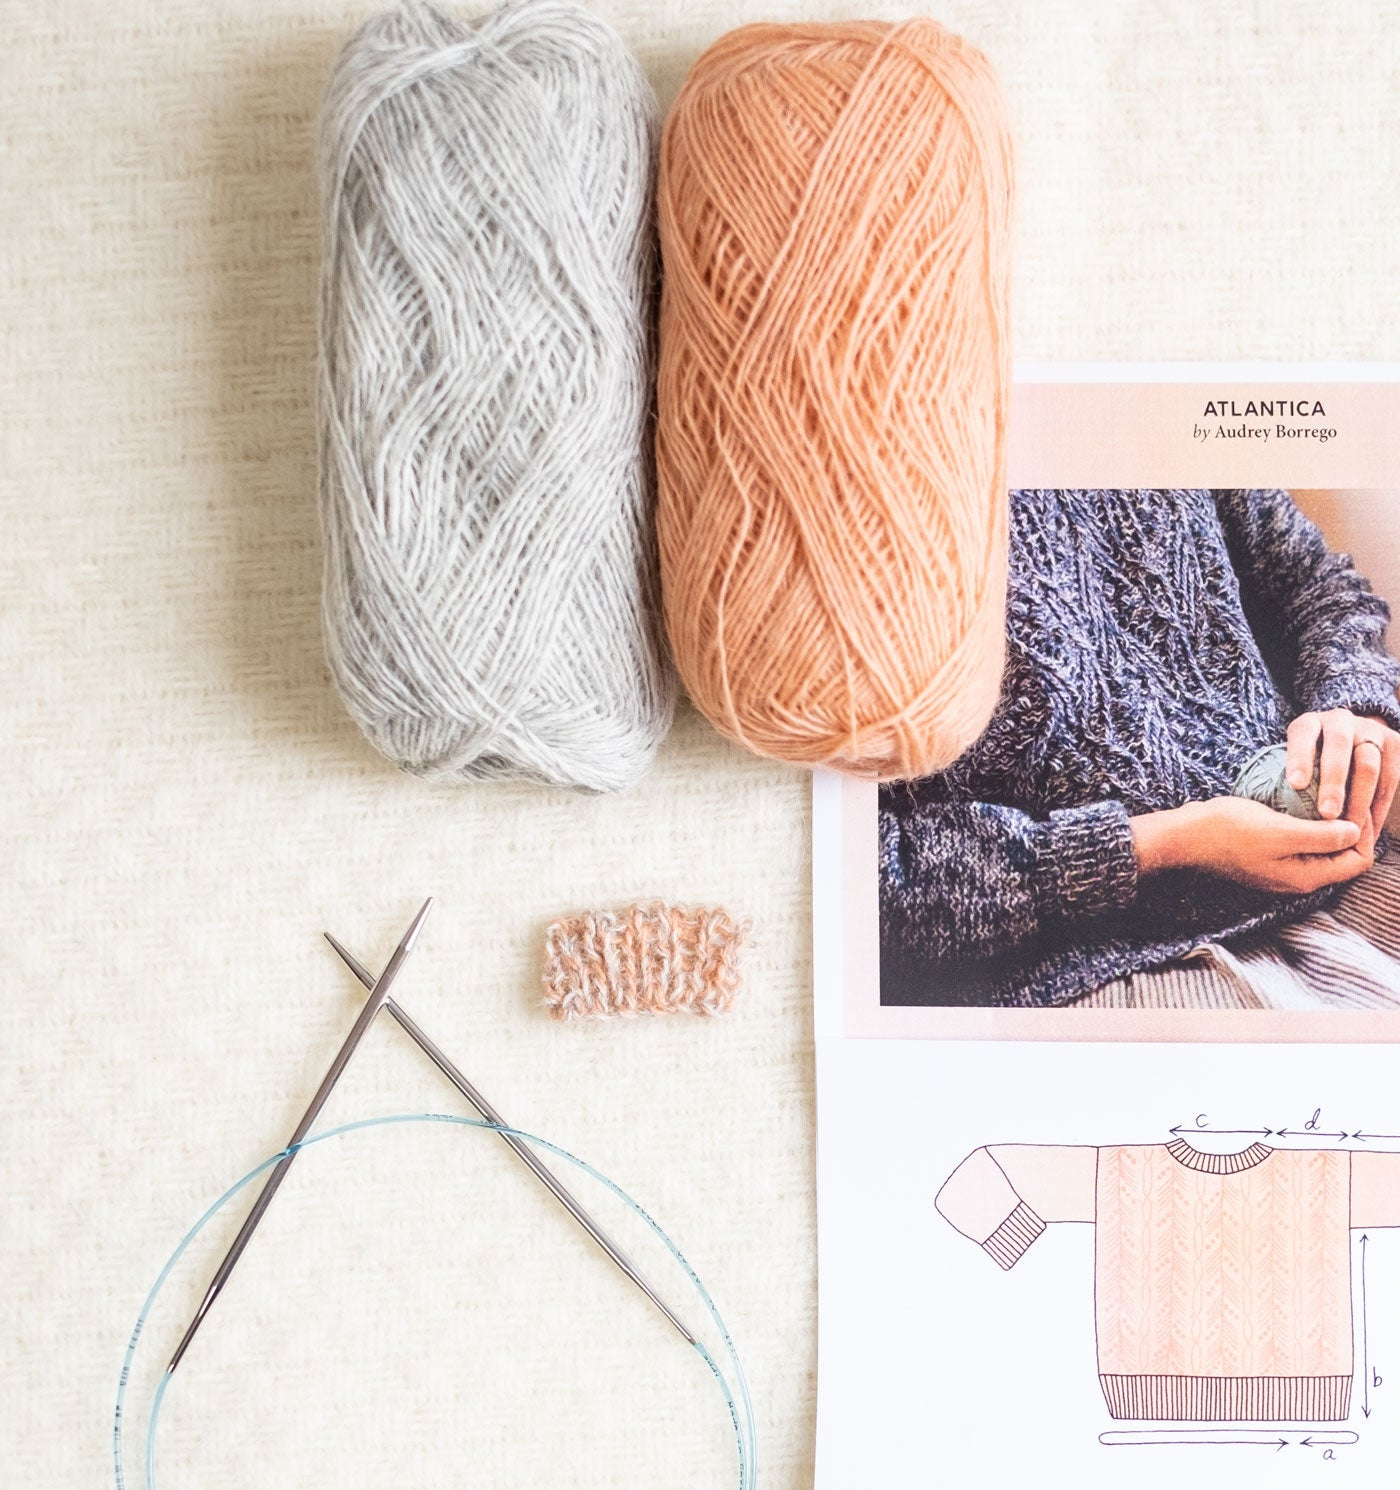 A ball of Light Ash Heather and a ball of Peach Einband yarn lay atop a printed page of the Atlantica Pullover pattern. A pair of stainless steel circular knitting needles and a small swatch of the two hues marled together lay next to the pattern page.